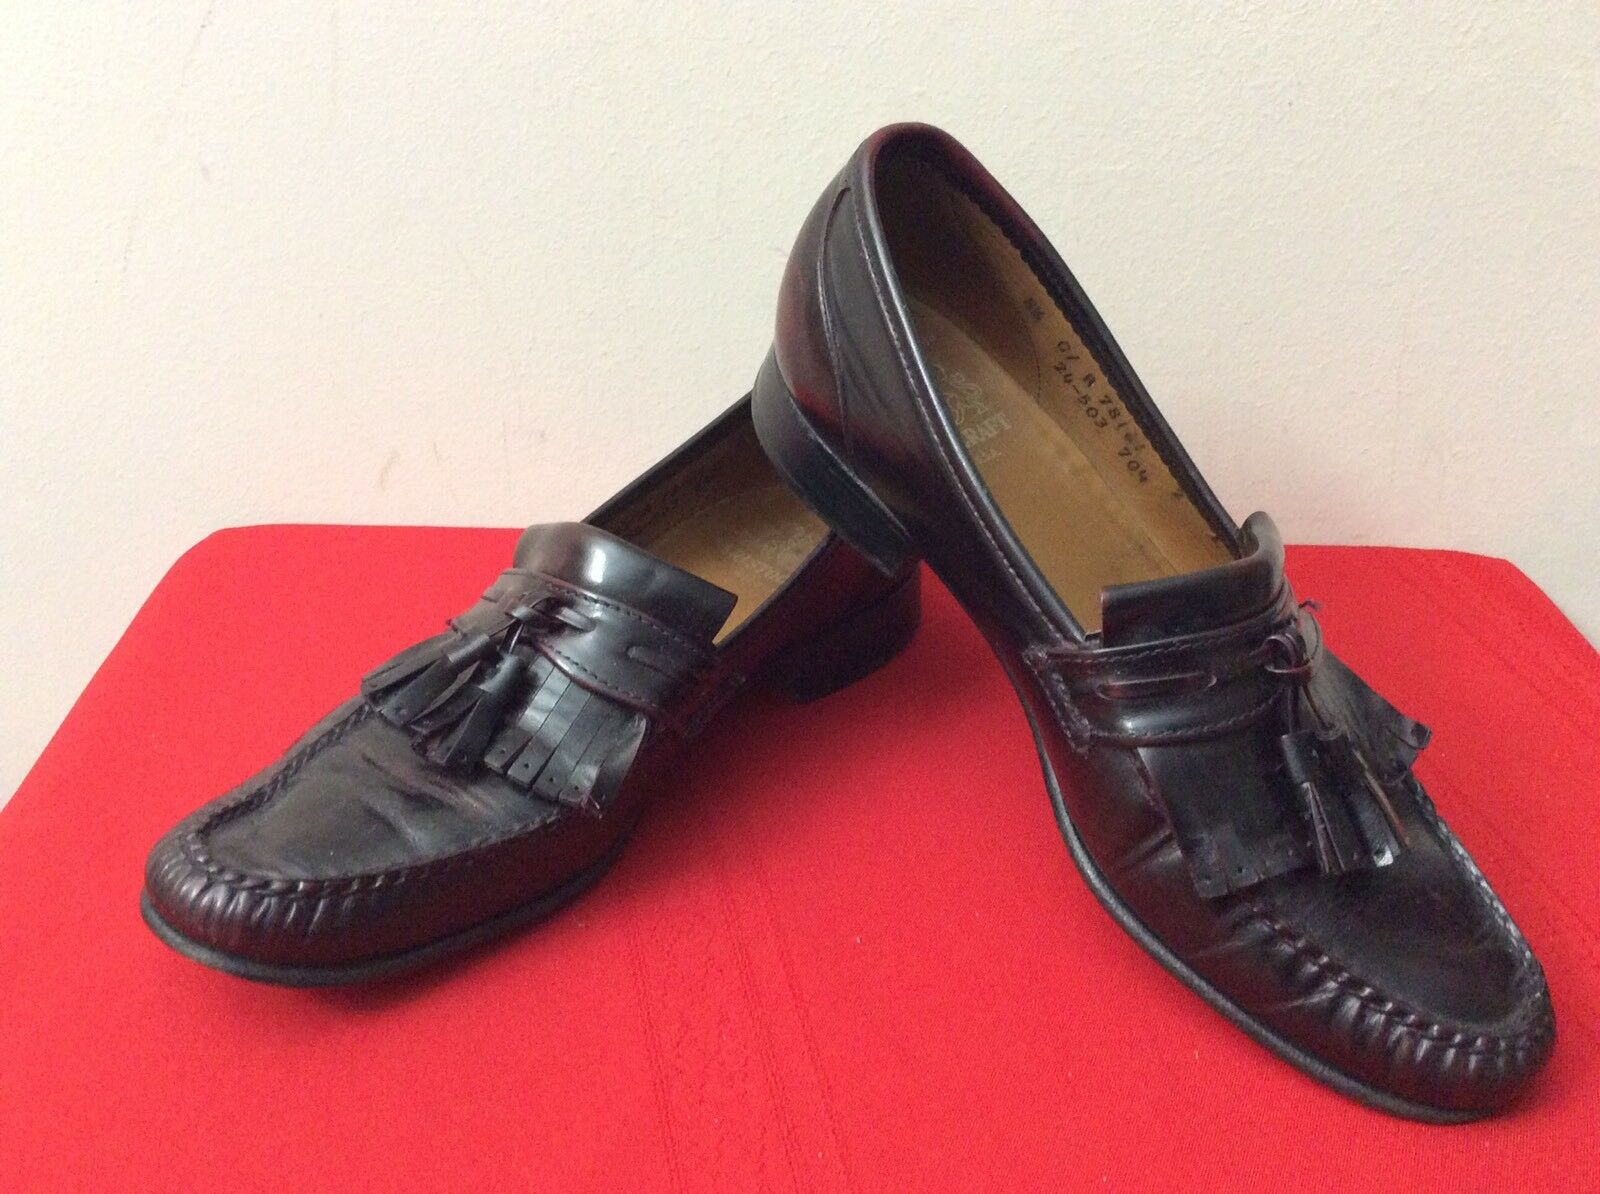 Johnston & Murphy Tassel Dress Shoes Brown Wingtip Tassel Murphy Loafers Mens Size 8.5 (bx25) 3c27e2